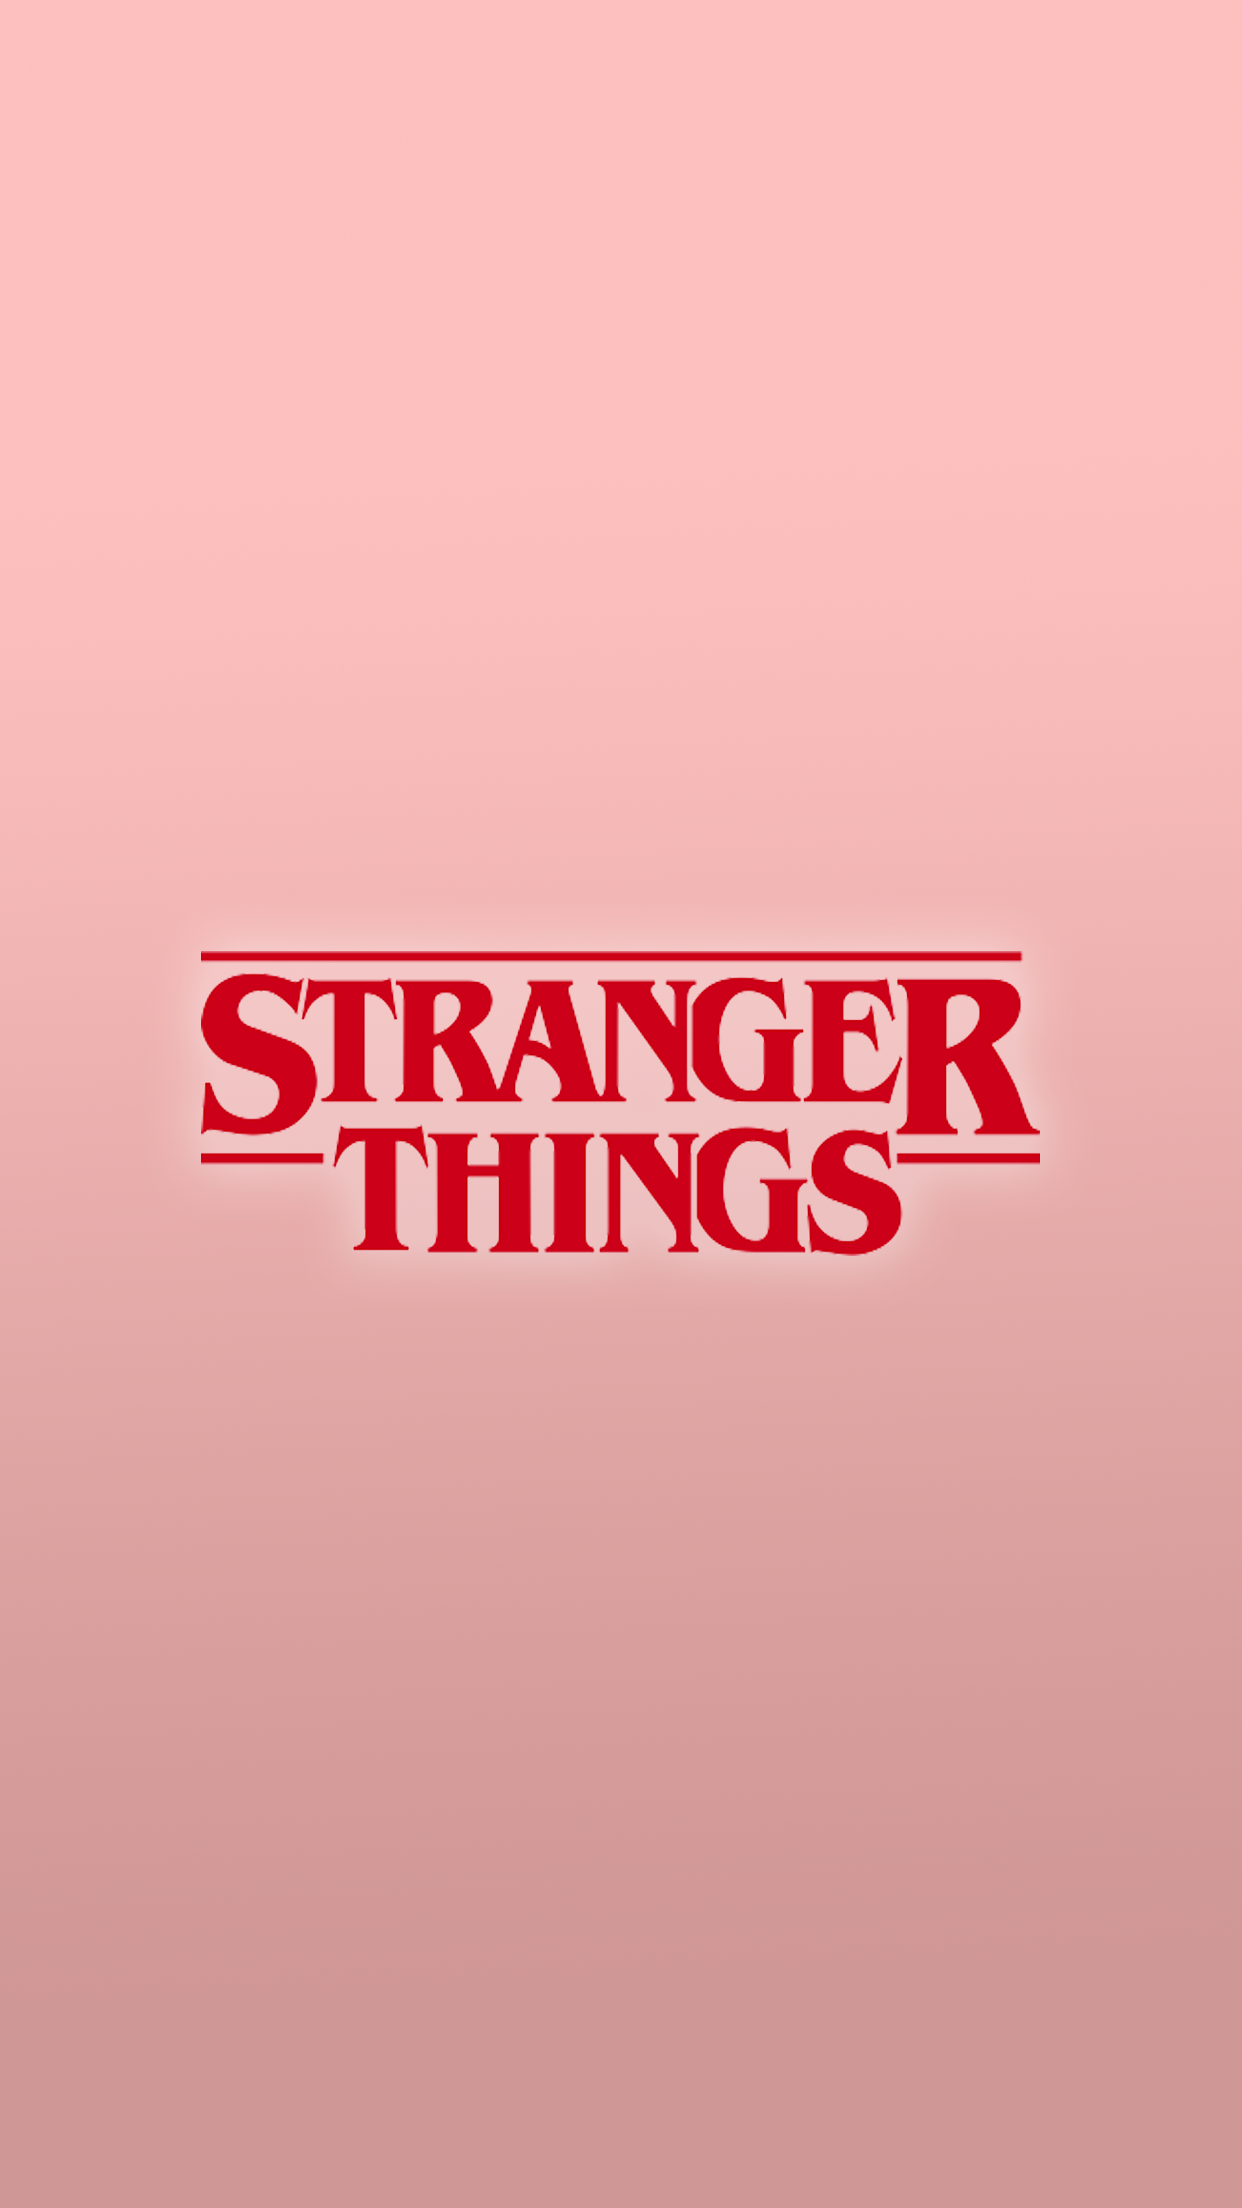 Stranger things pink wallpaper iPhone 6s Plus